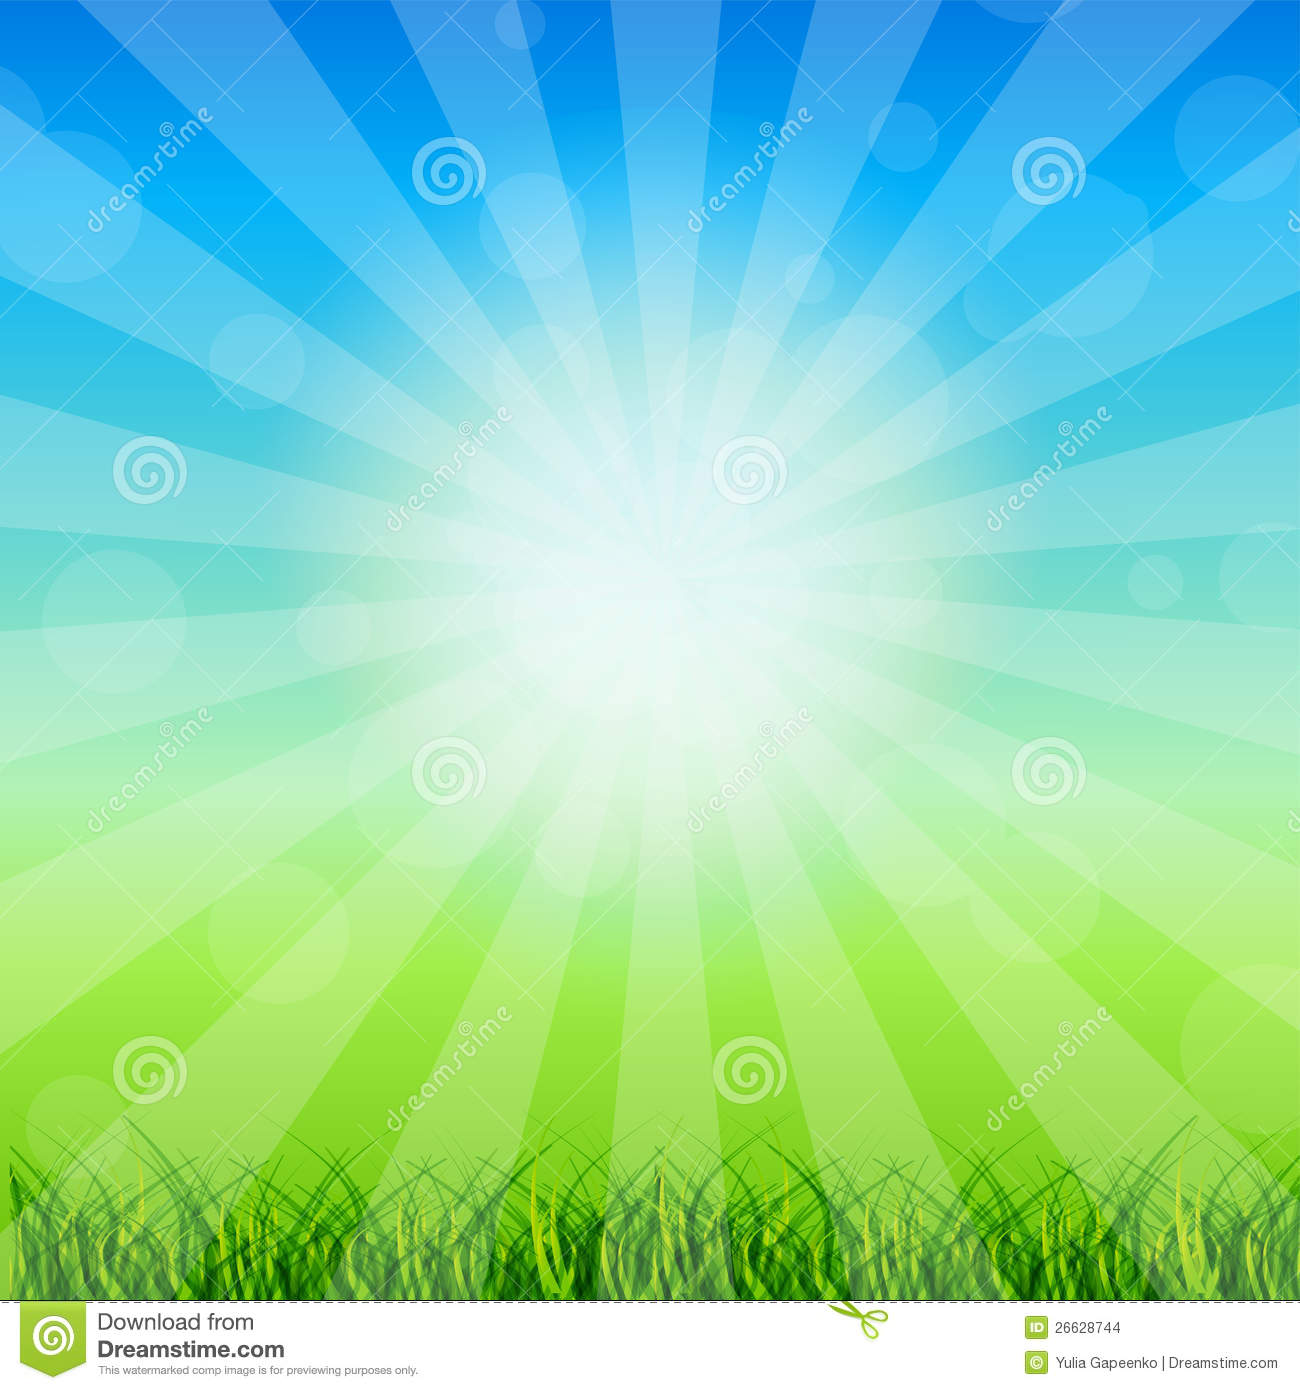 summer abstract background with grass stock illustration